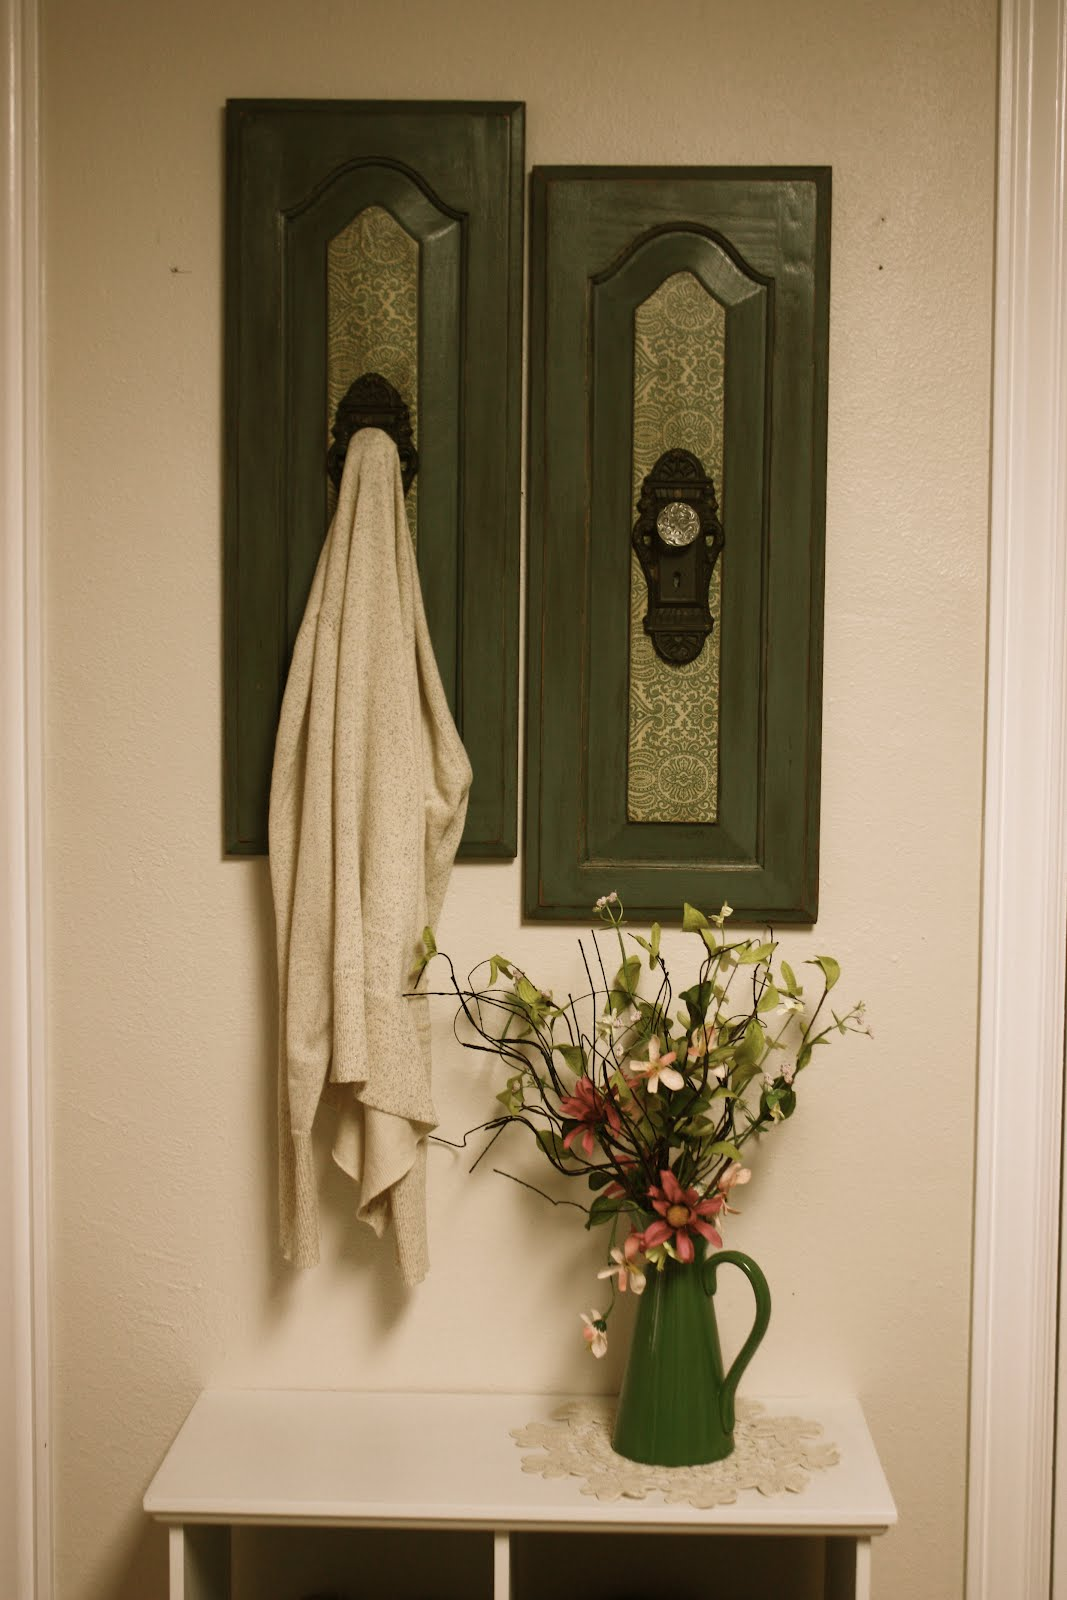 Exceptionnel Green Wall Hanging With Antique Door Knob